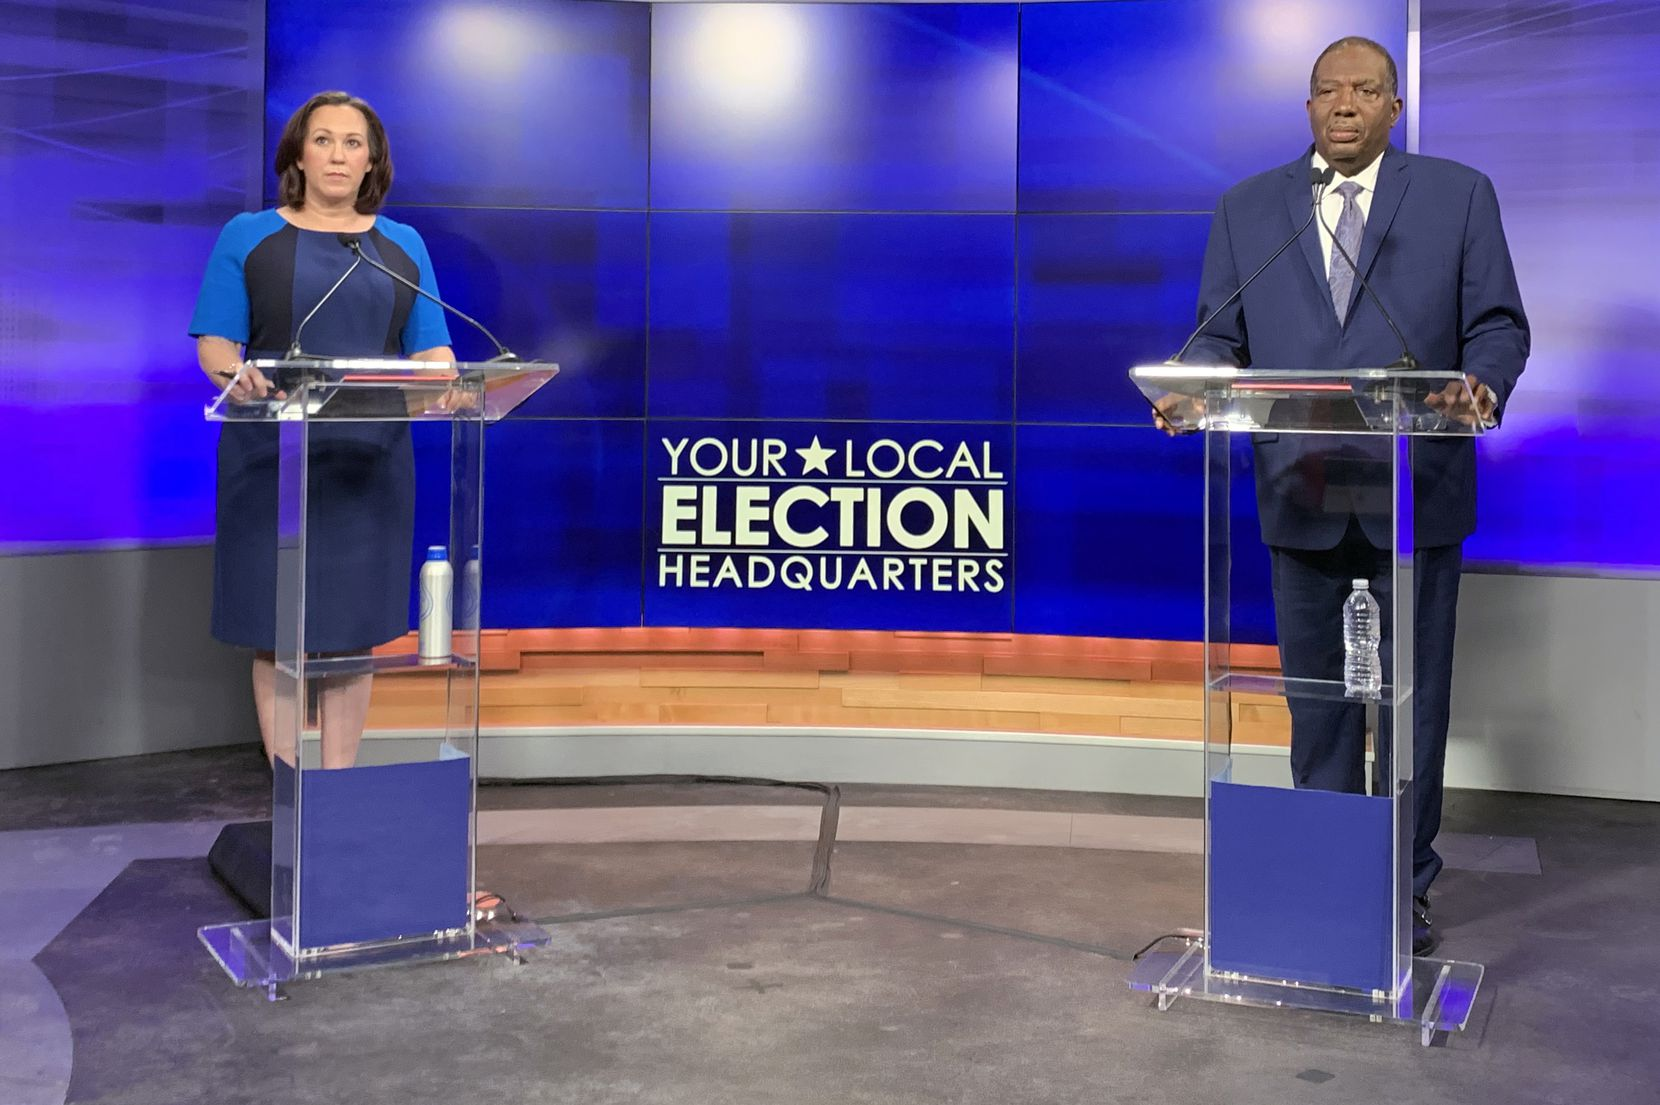 Decorated veteran MJ Hegar of Round Rock leads state Sen. Royce West of Dallas in their Democratic runoff for U.S. Senate among women, Hispanics and college-educated voters, though West leads her among African Americans, the poll found.